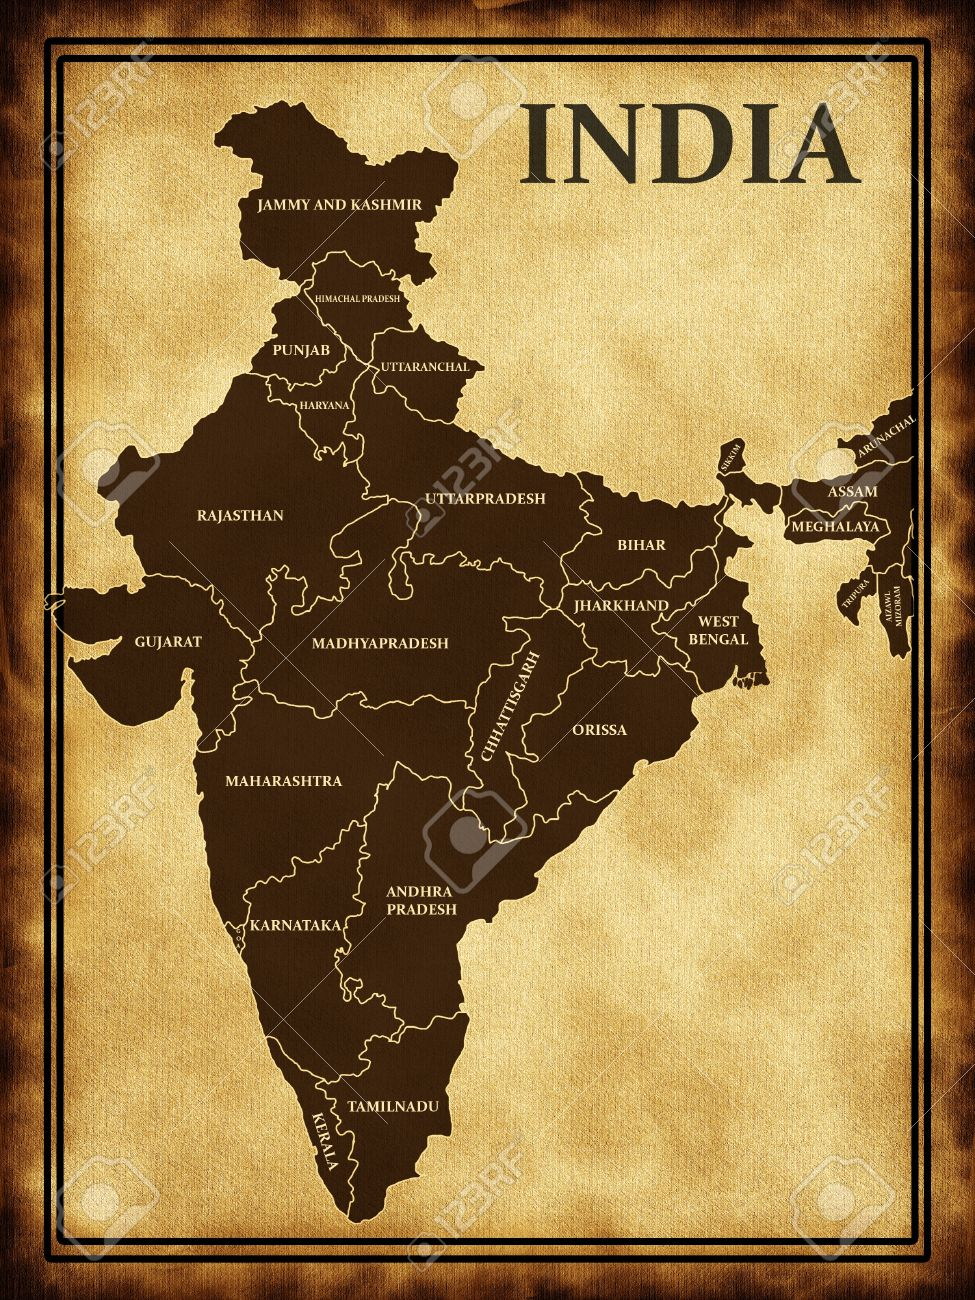 Map Of India On The Old Background Stock Photo Picture And Royalty